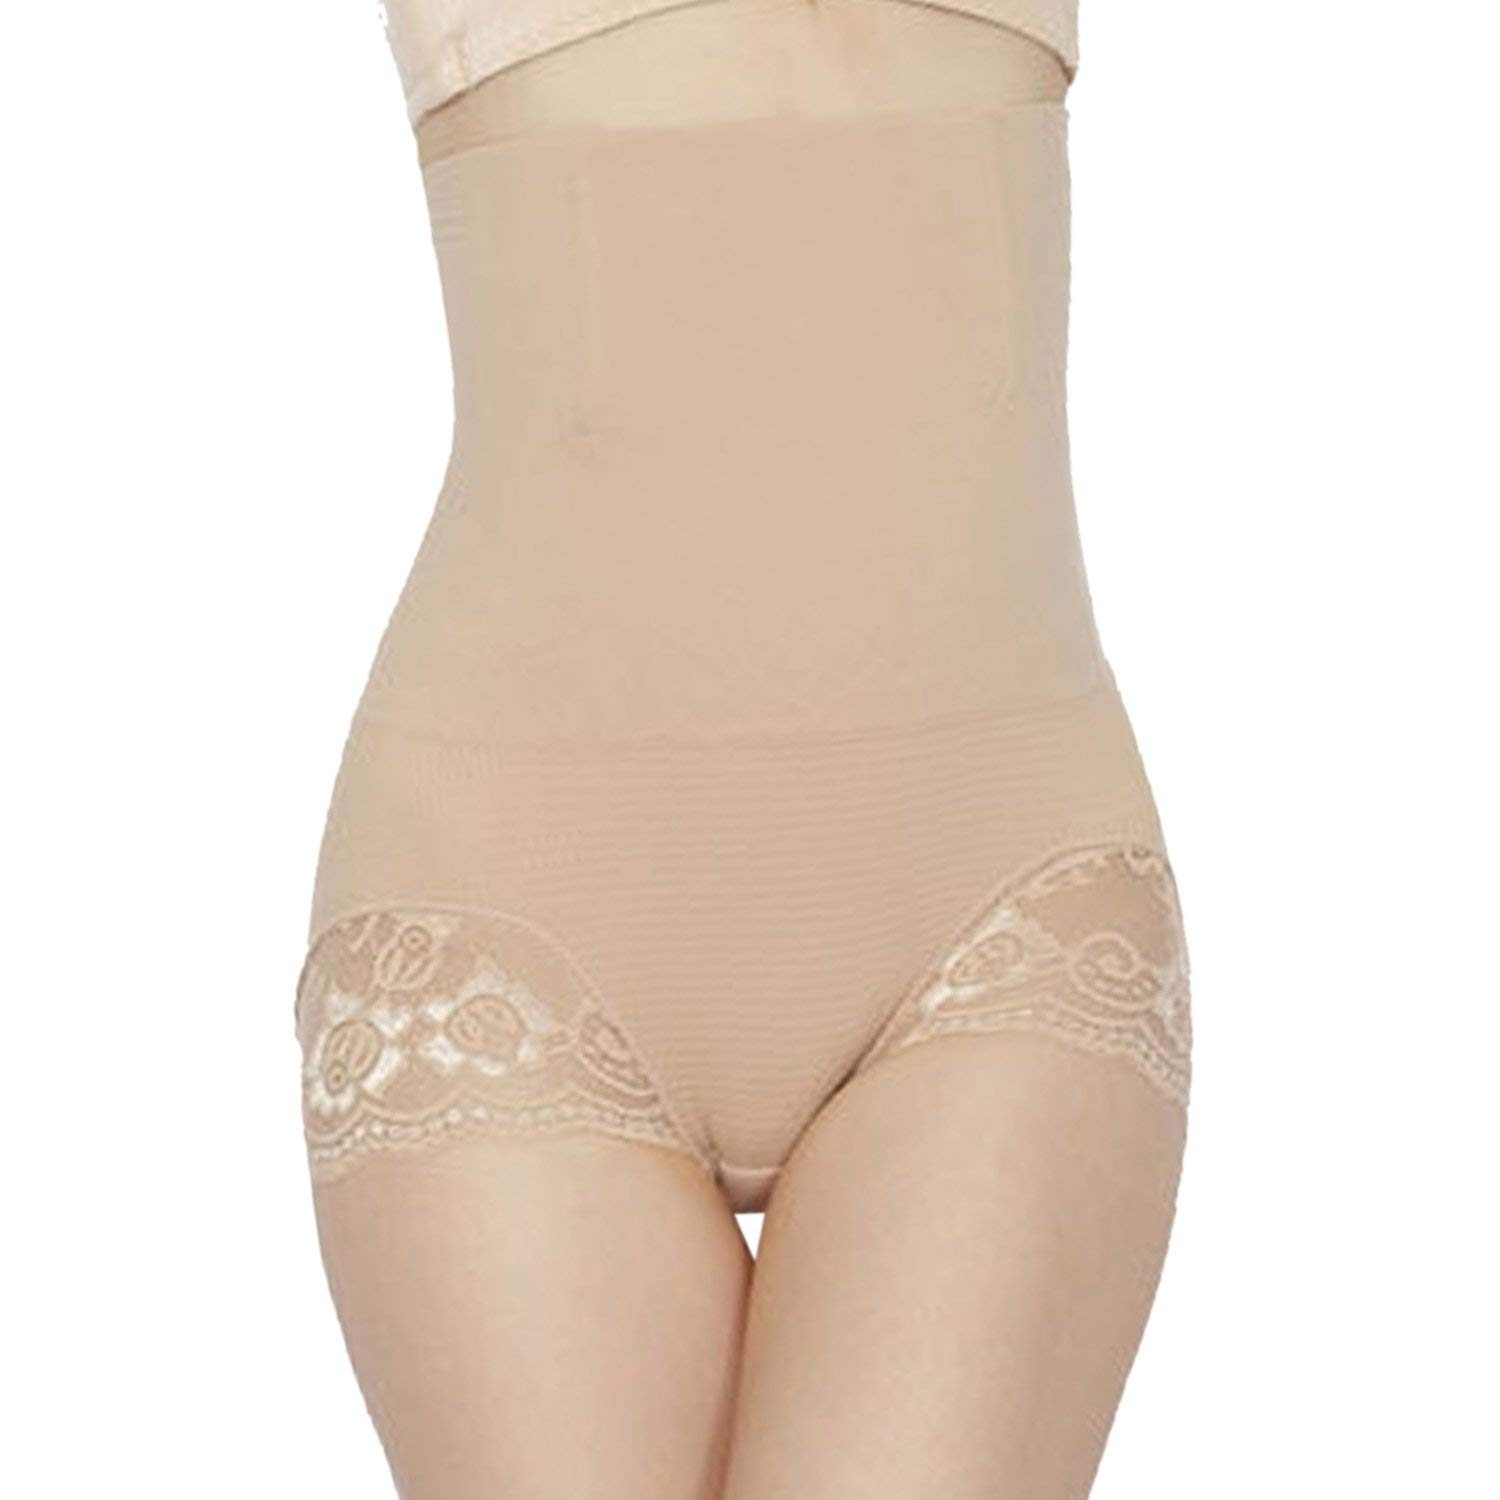 da114e4a44 Get Quotations · Sasairy Women Postpartum Support Panty Recover Belly  Elastic Underwear